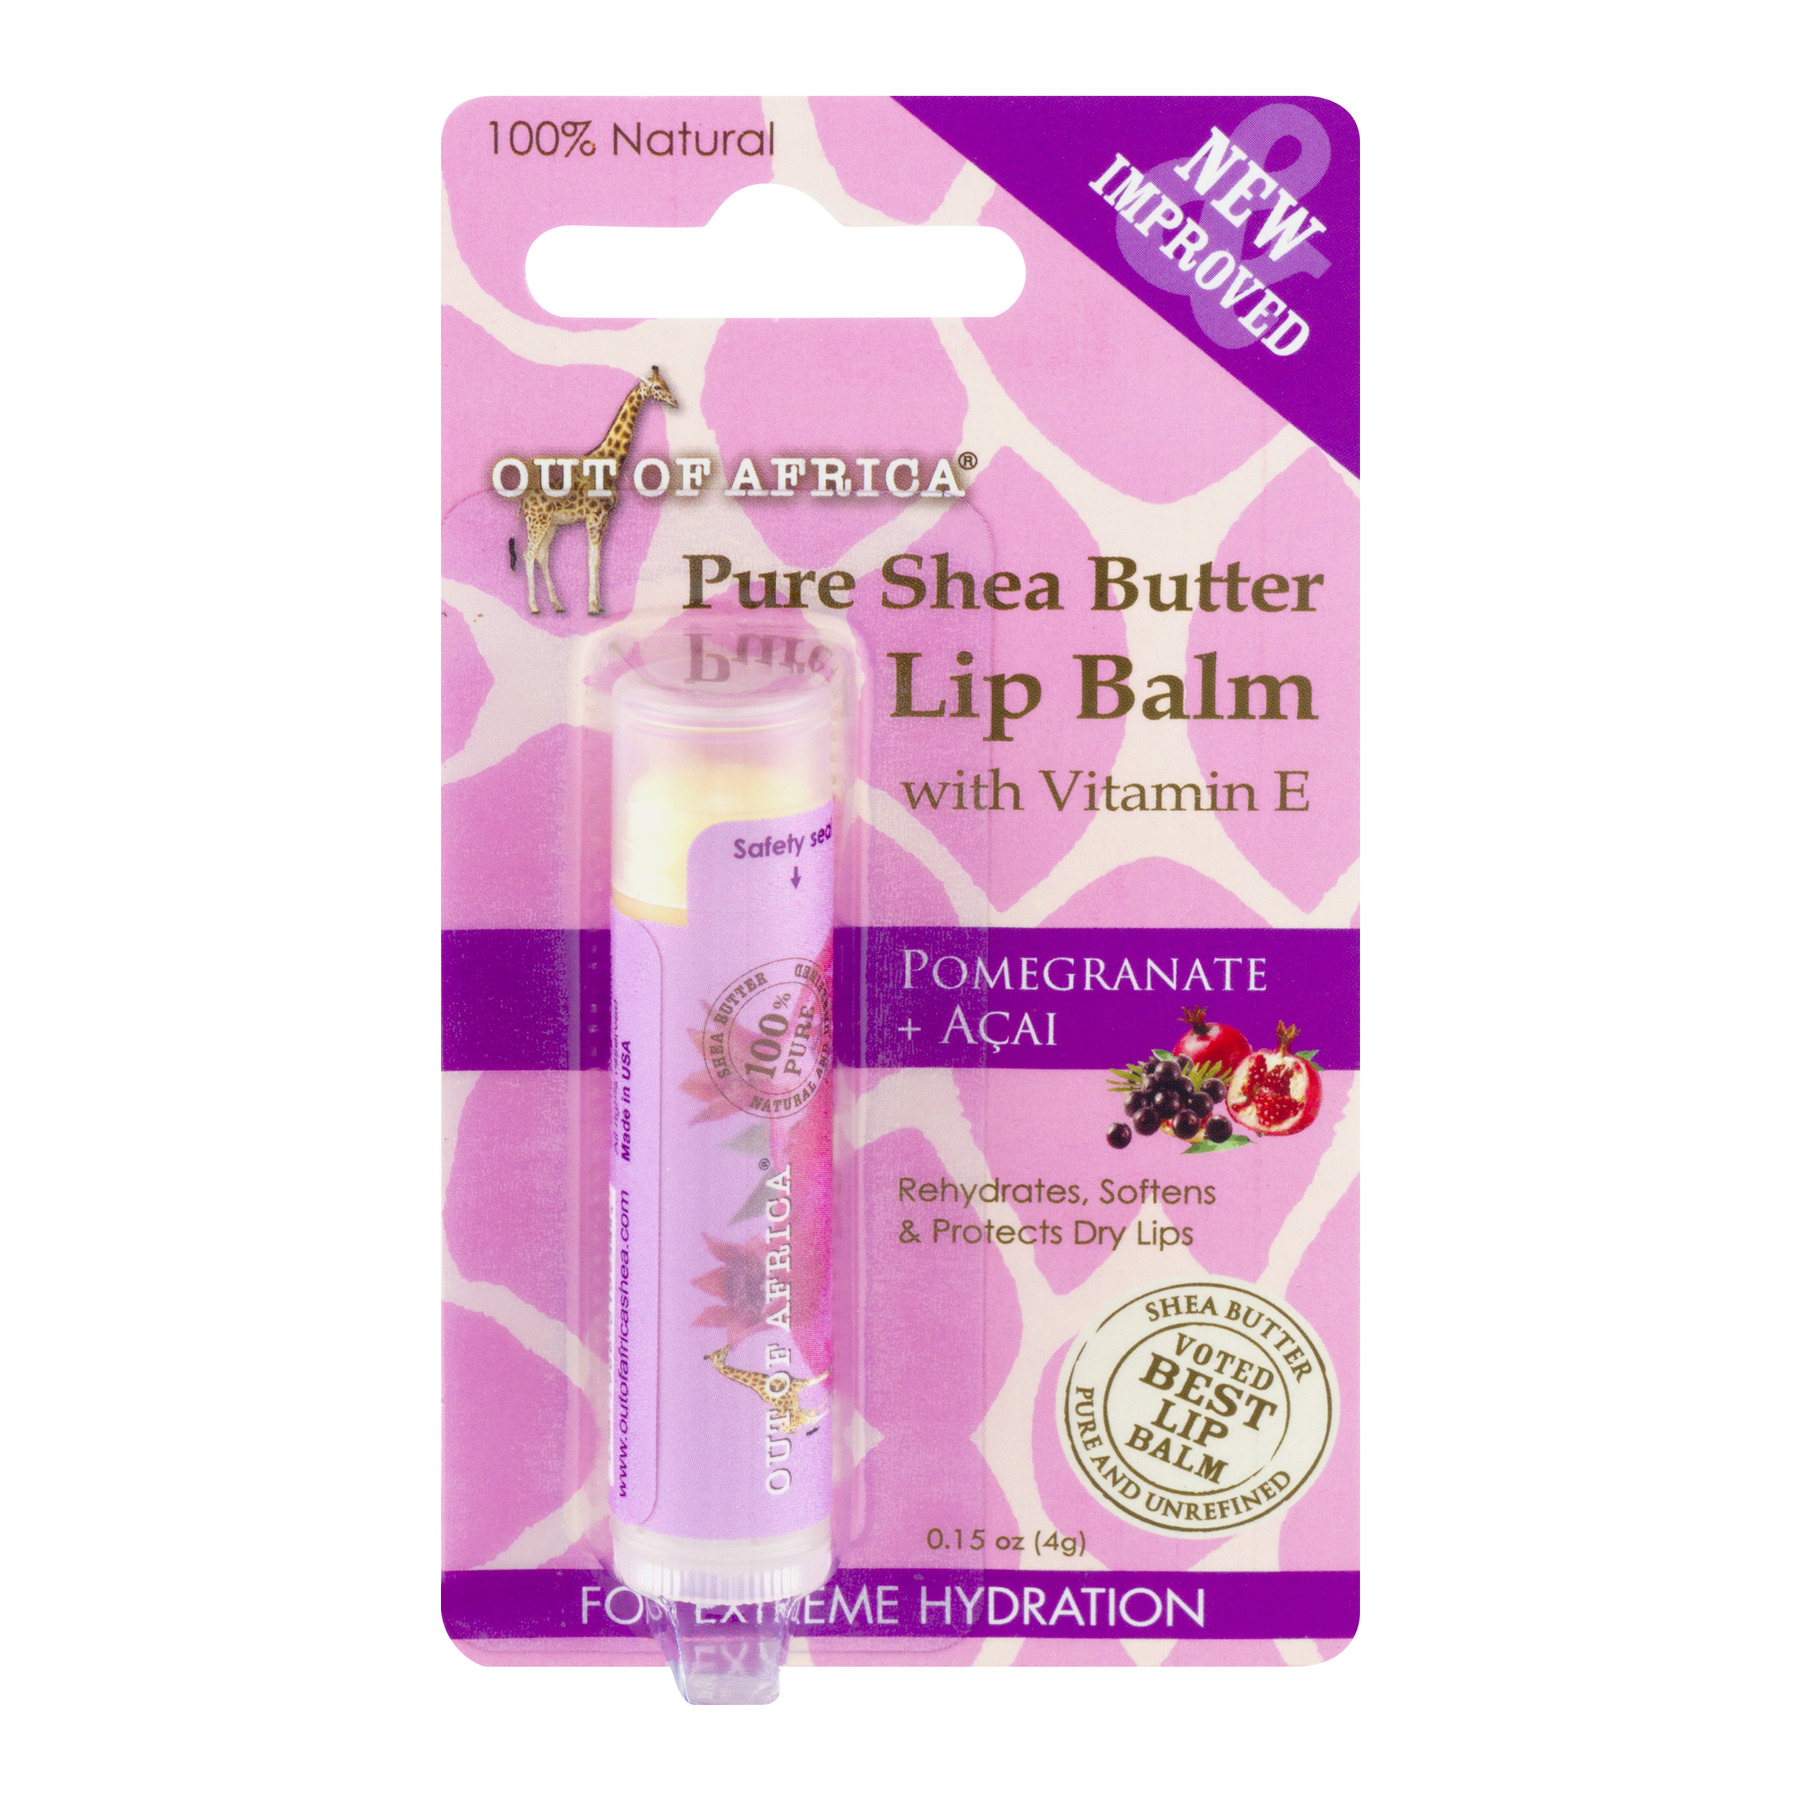 Out Of Africa - Pure Shea Butter Lip Balm Pomegranate + Acai - 0.15 oz.